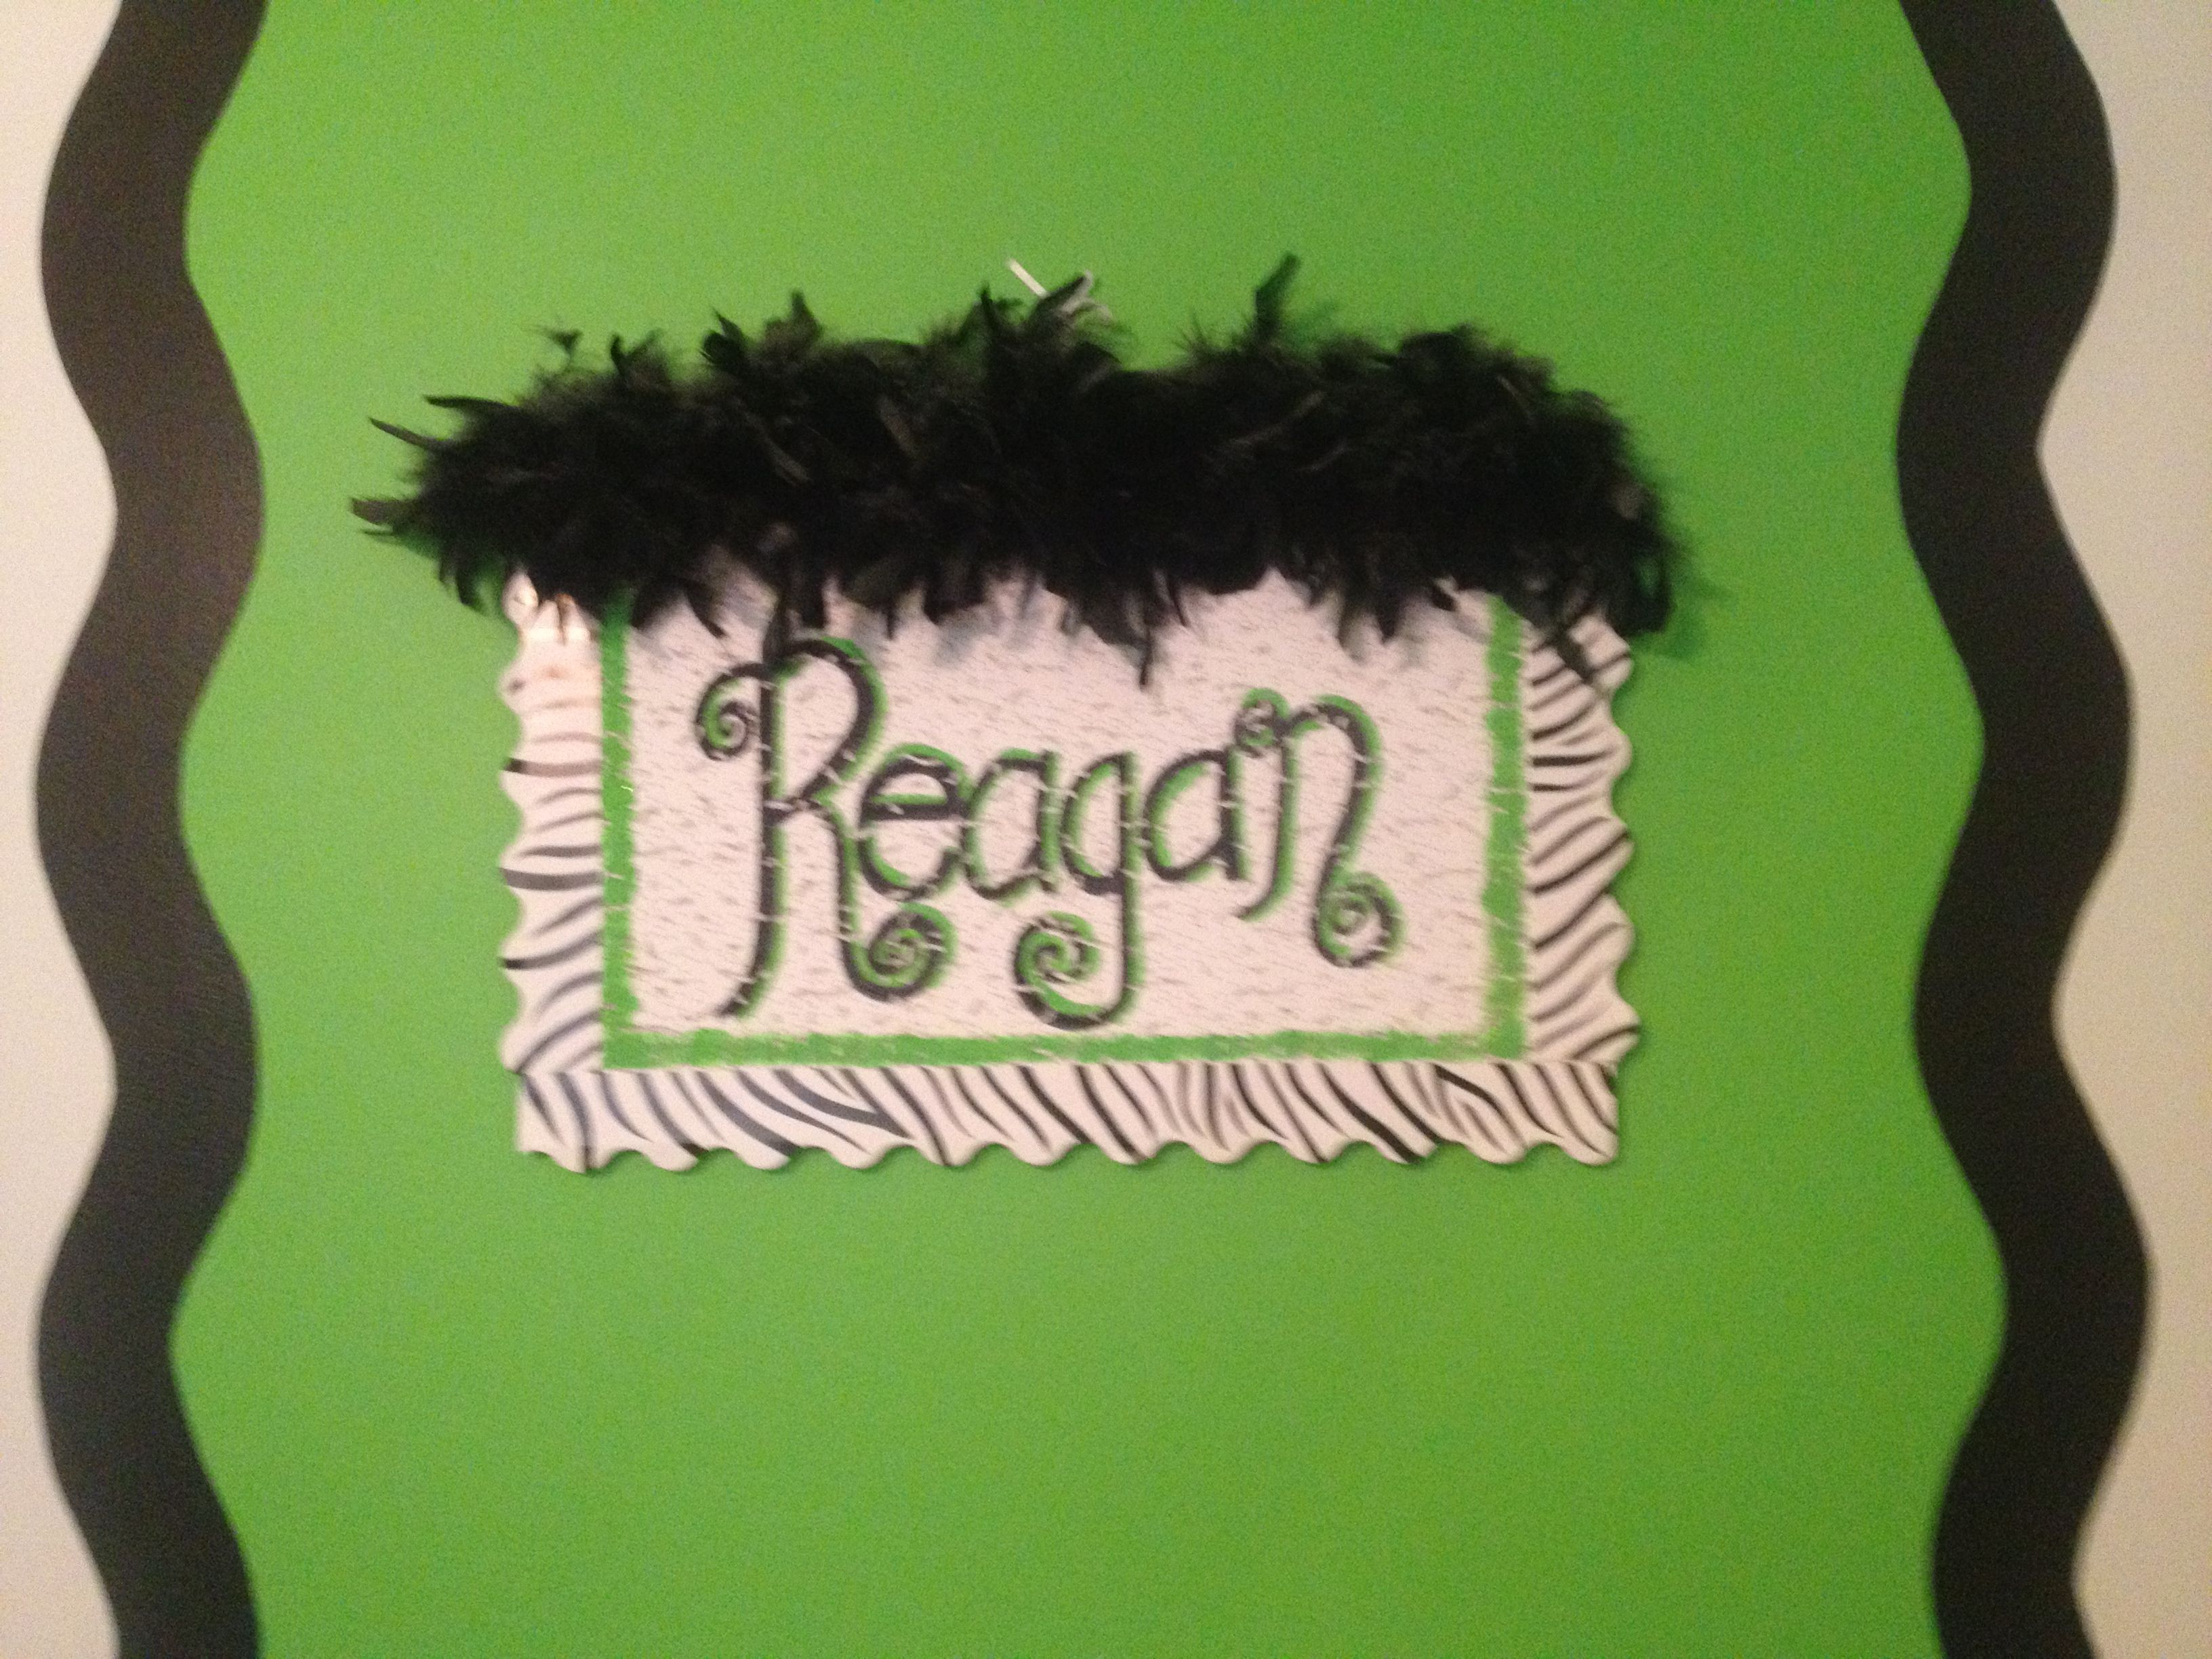 Take a ceiling tile and stencil or trace a name on it with paint. Add a border on the outside edges and glue a feather boa on the top. Easy and Cute for kids rooms :)